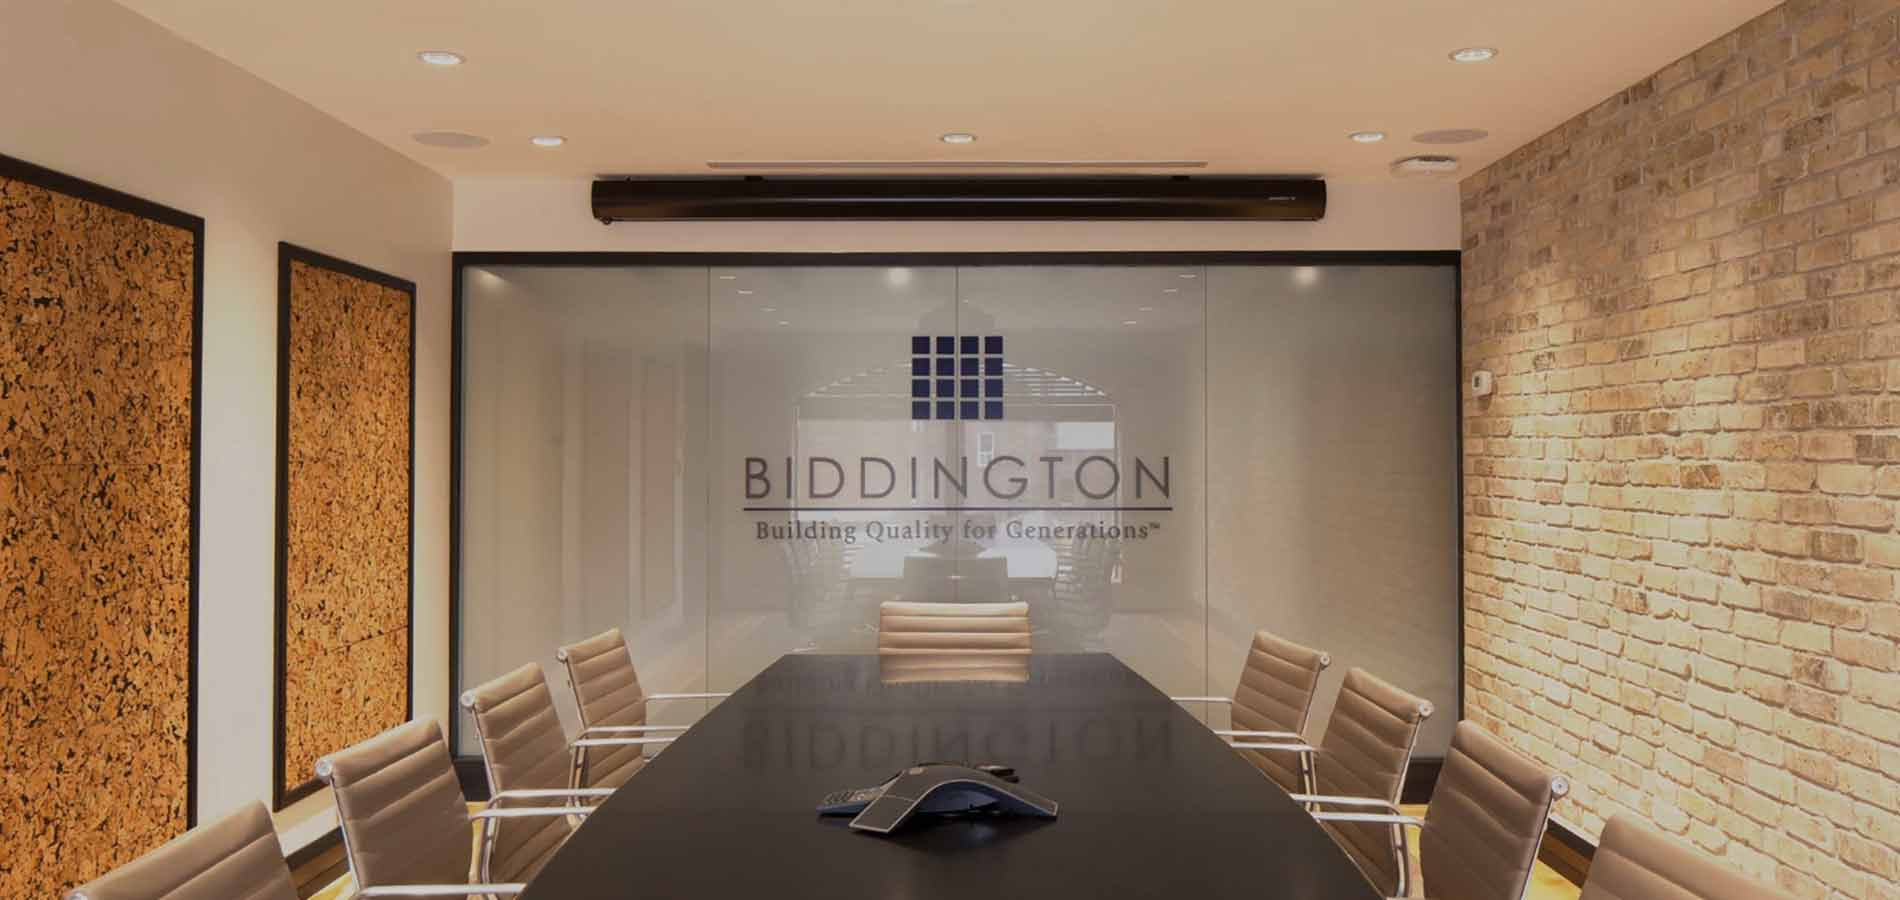 Biddington Company